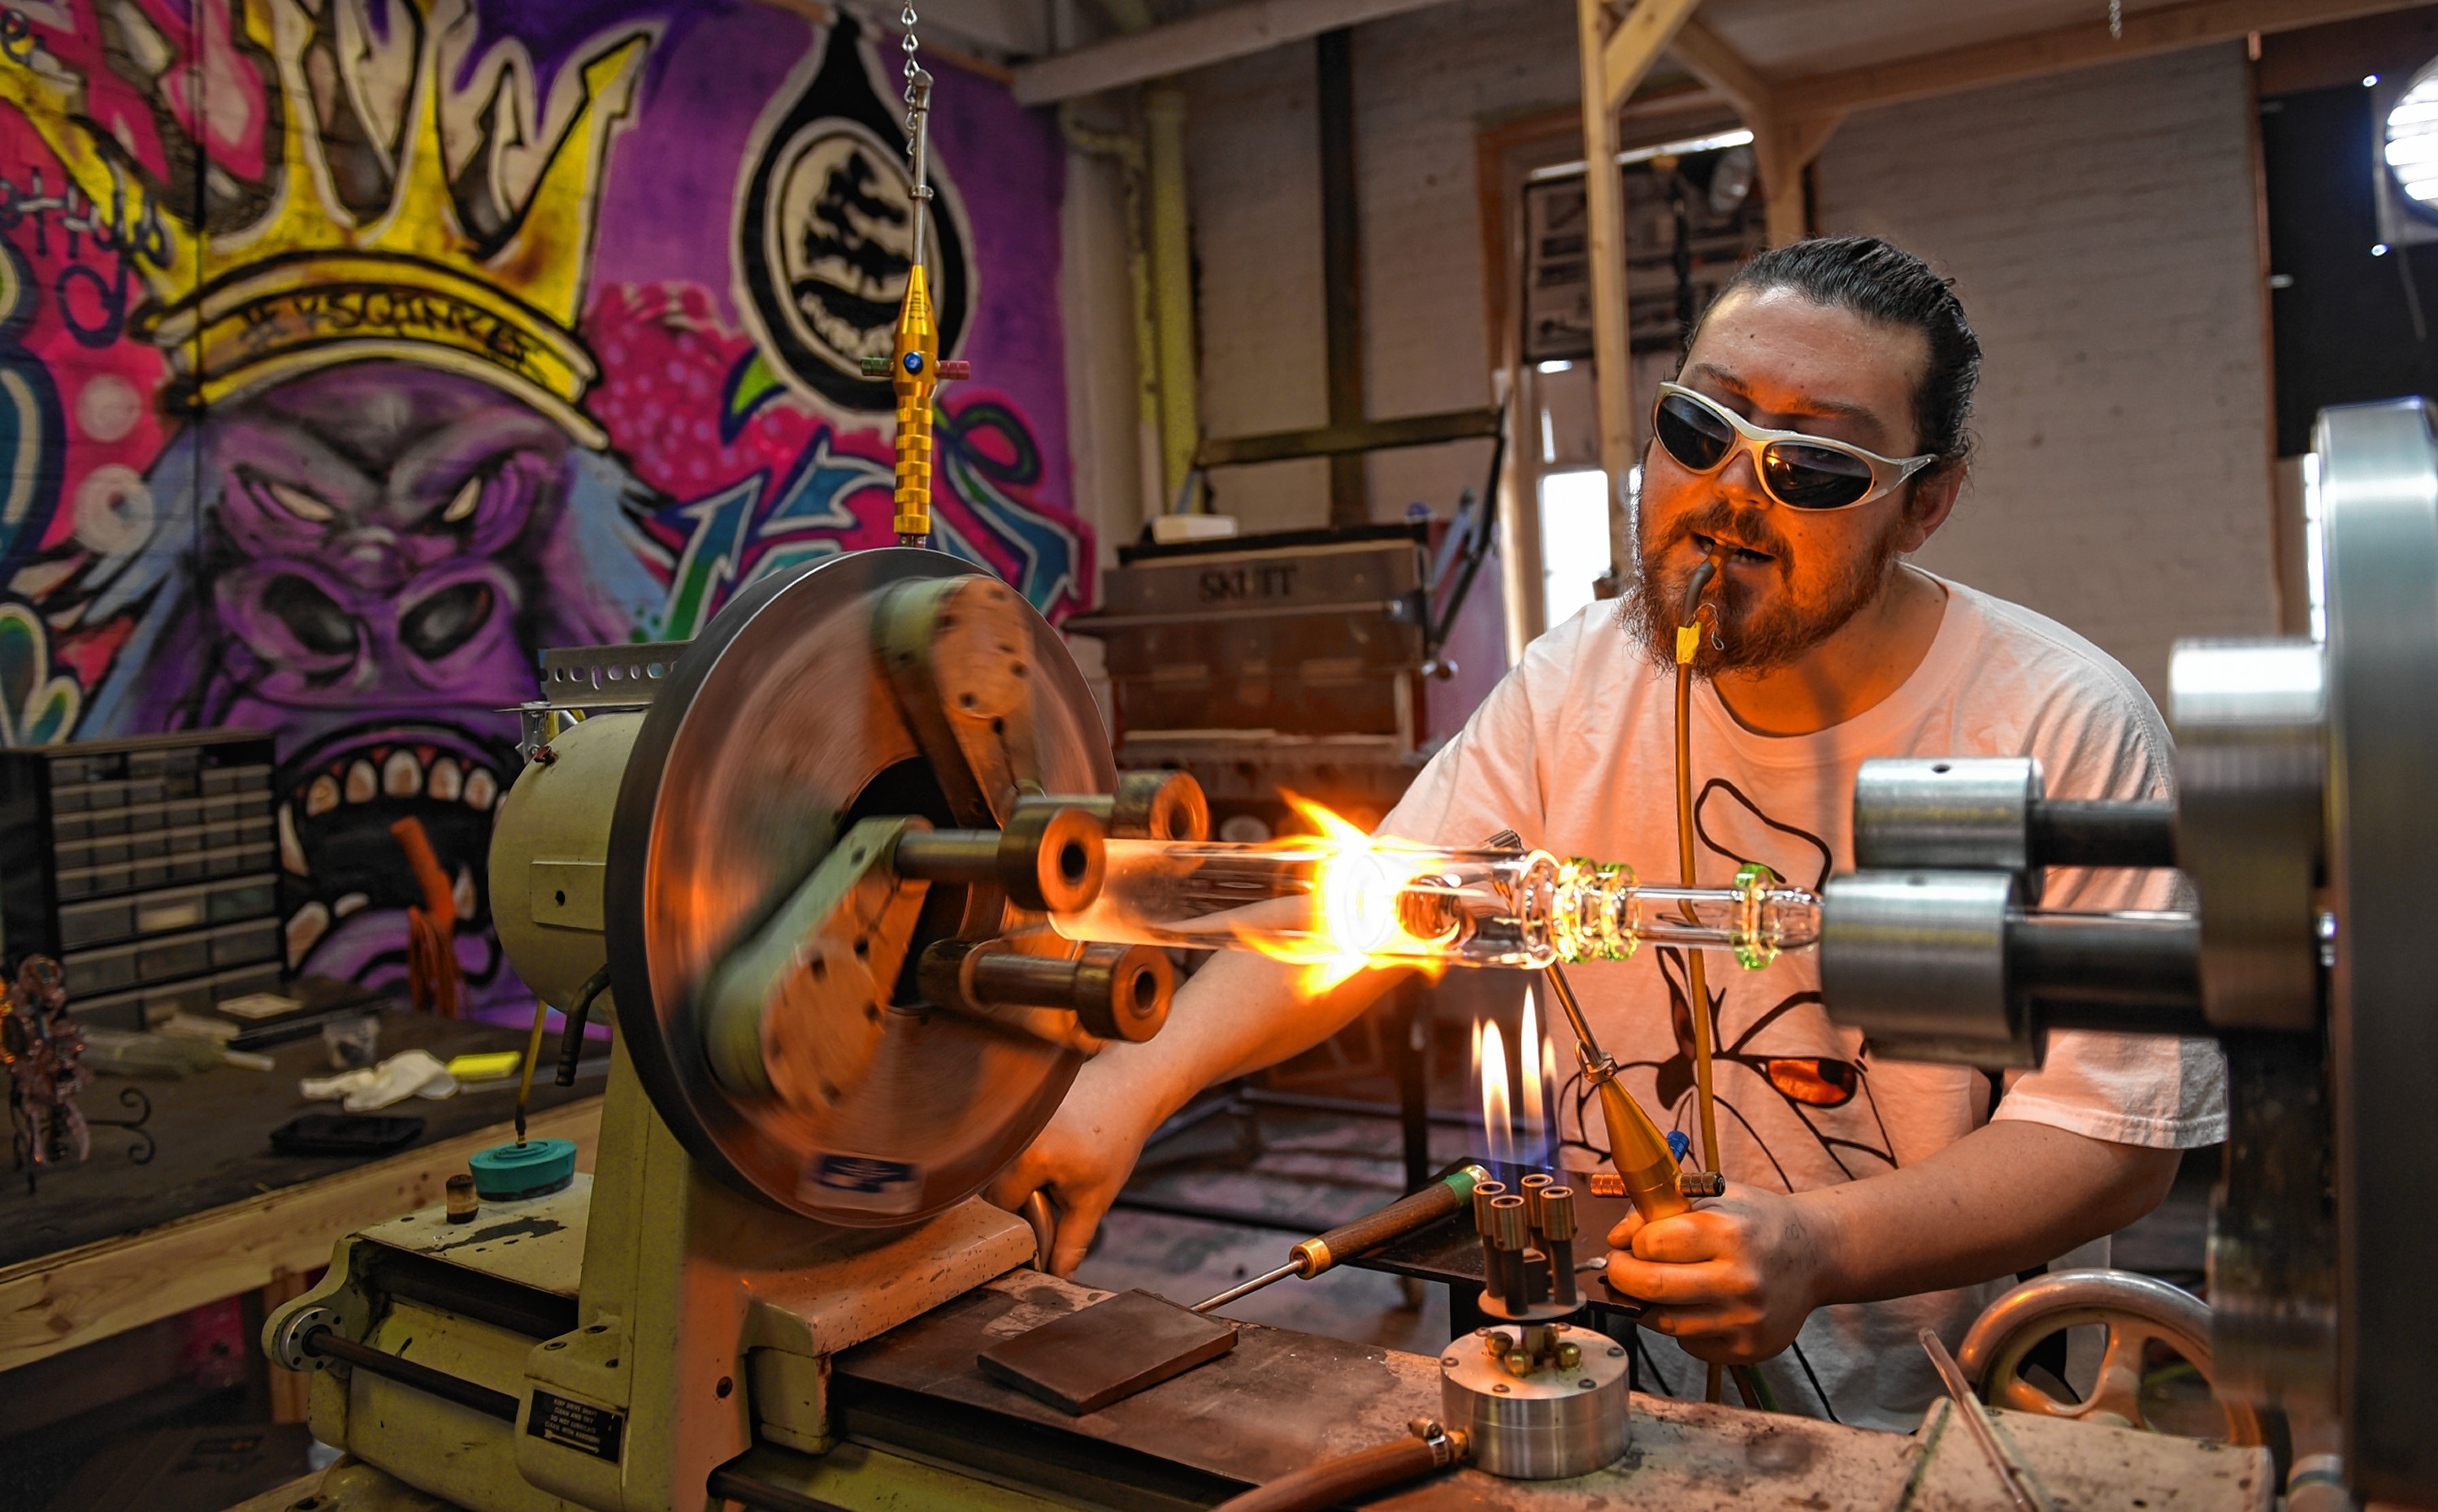 O Cannabis: From stigmatized weed pipe maker to artisanal marijuana glass blower